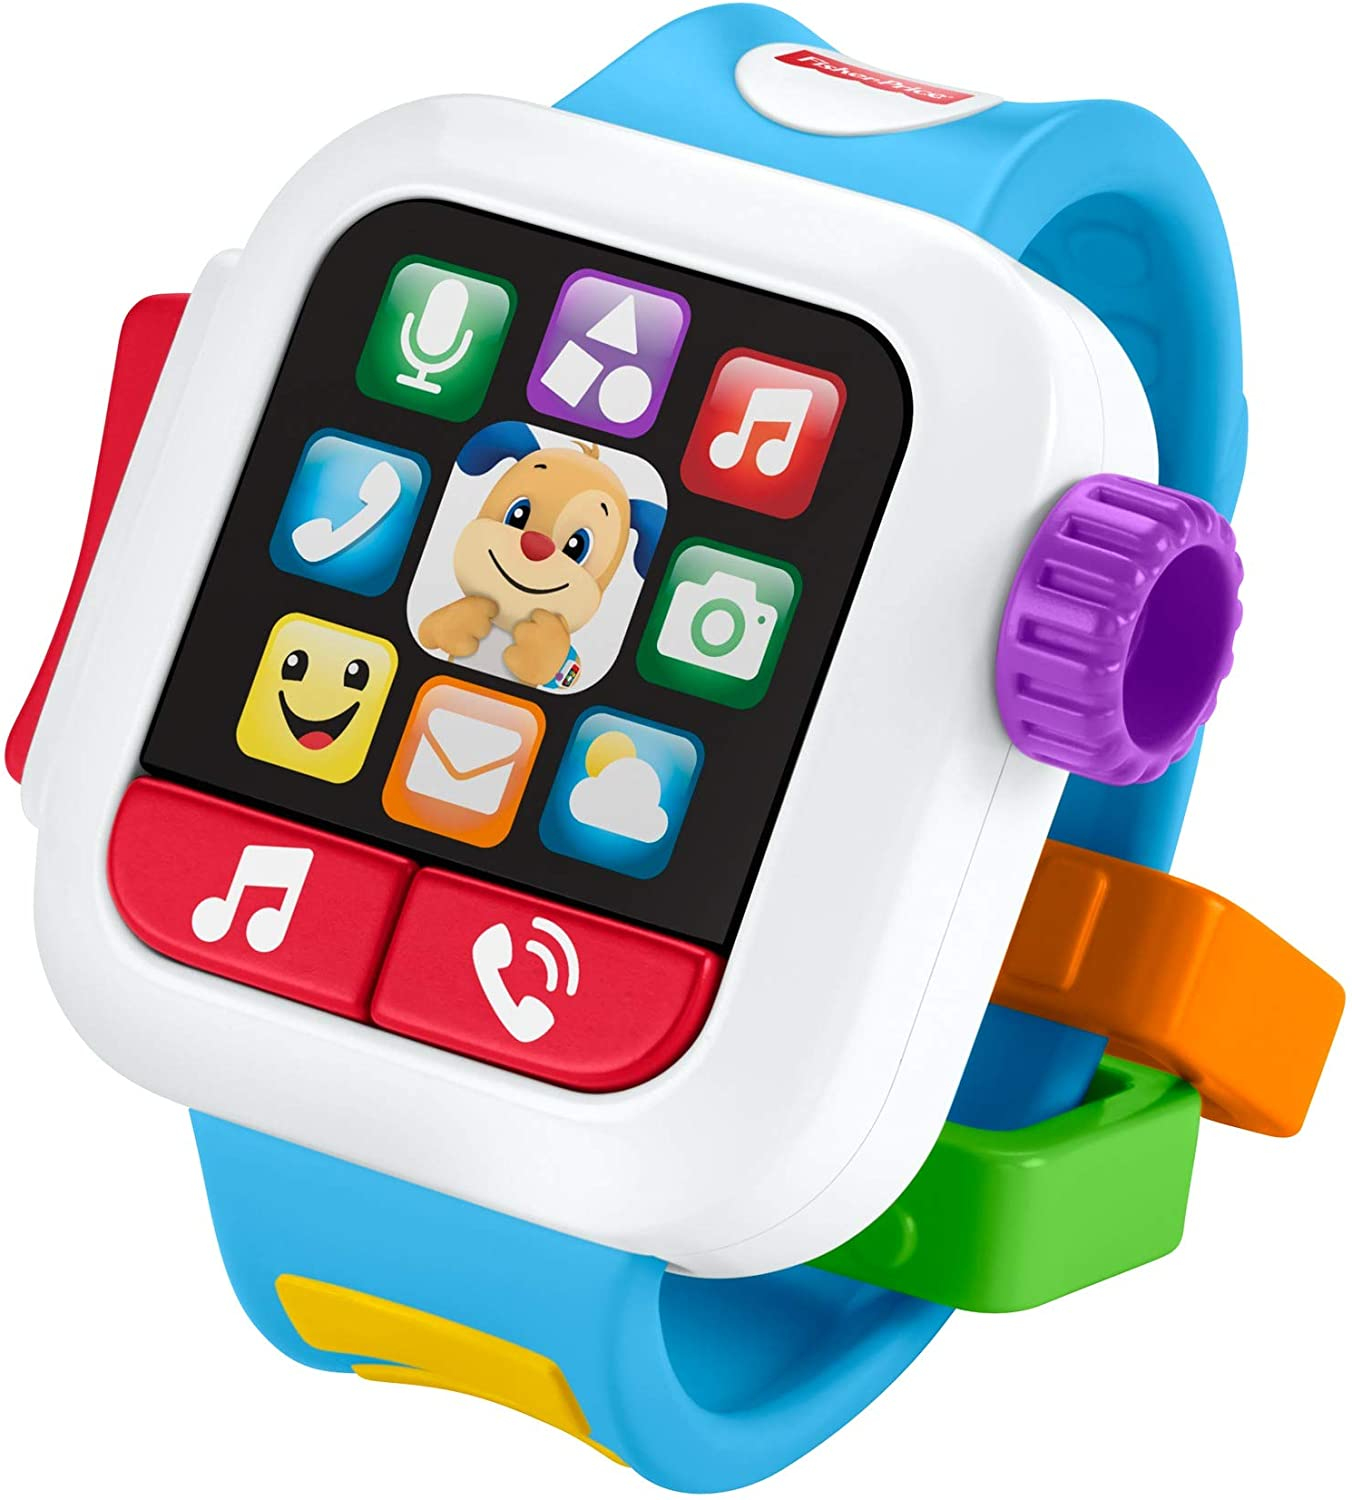 Fisher-Price GJW17Laugh & Learn Time to Learn Smartwatch, Musical Baby Toy, Multicolor